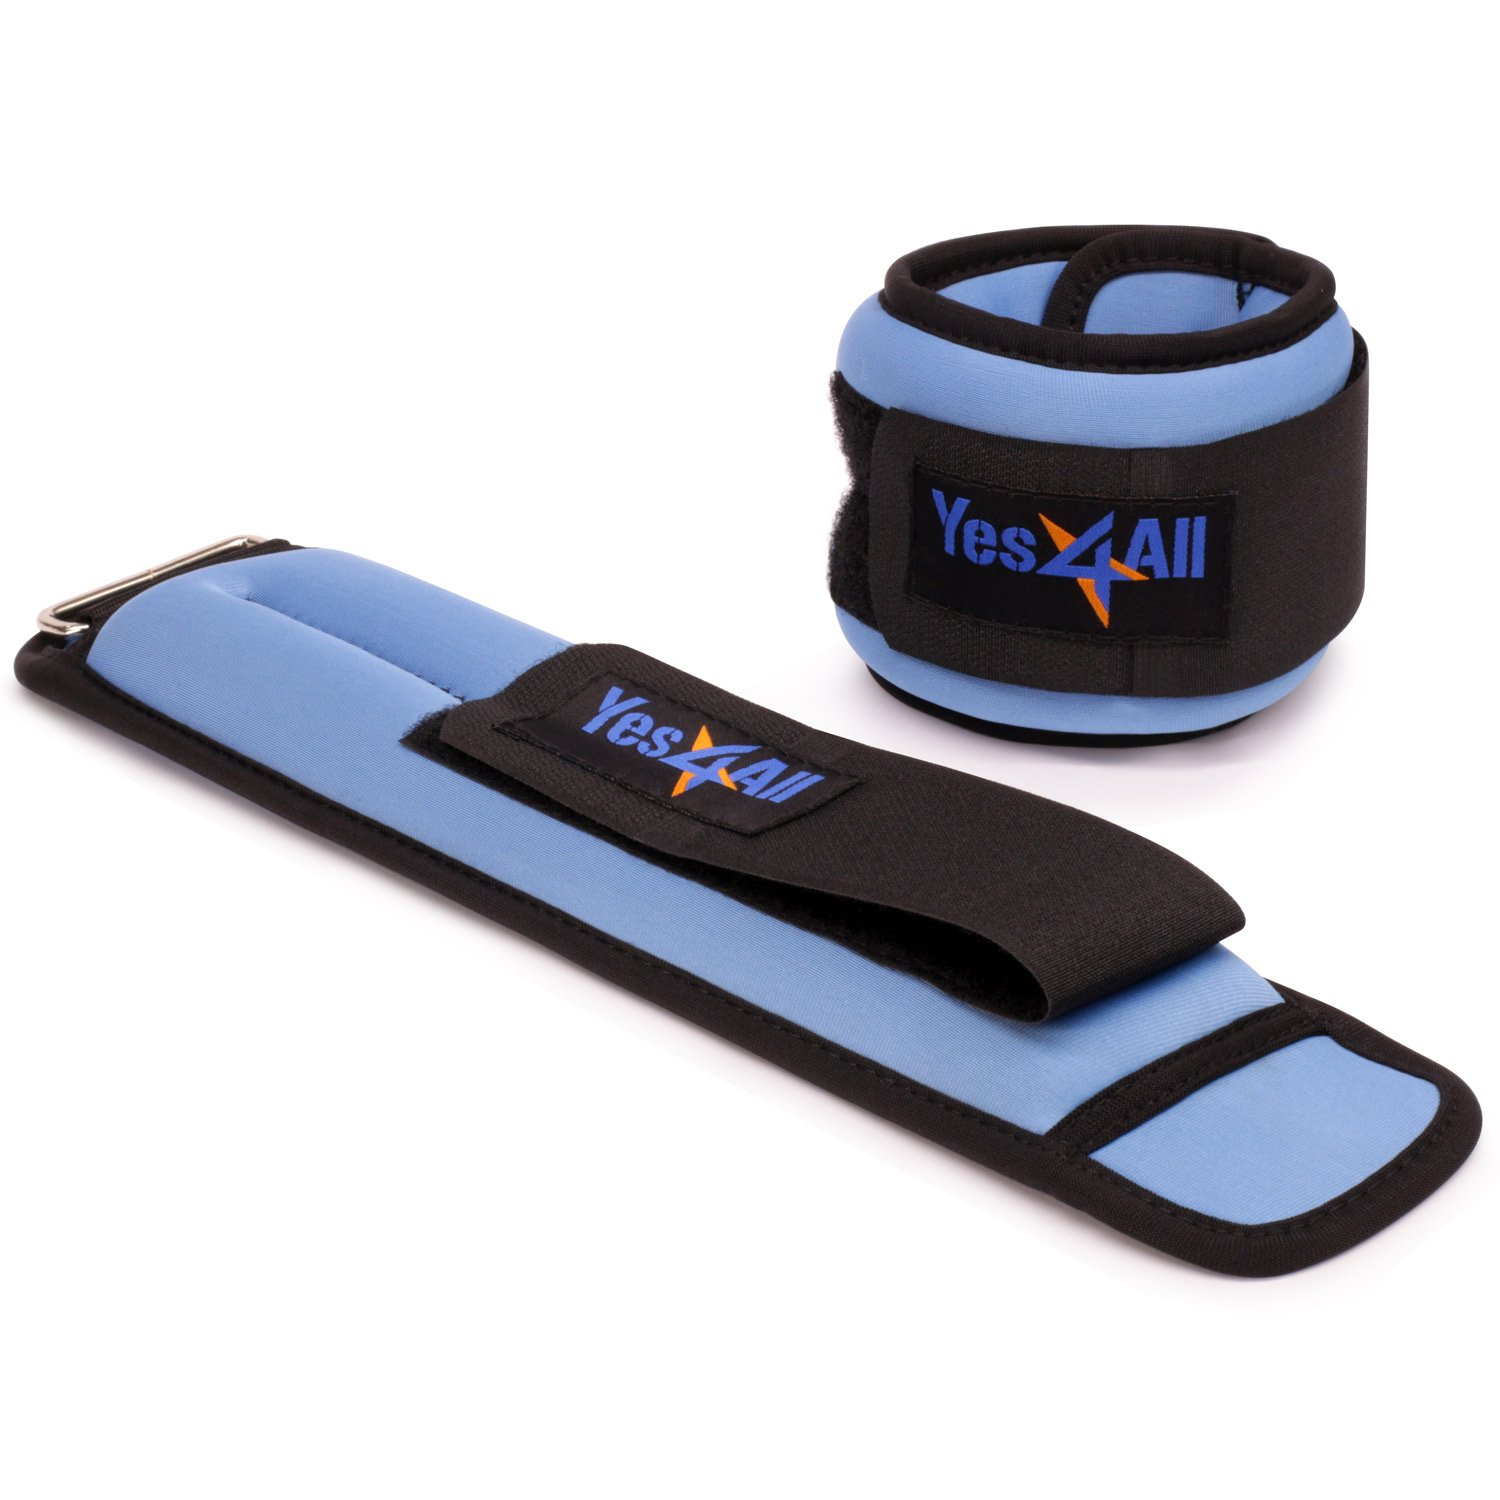 Yes4All Ankle Wrist Weight Pair Set with Adjustable Strap Multi Weights Colors Available